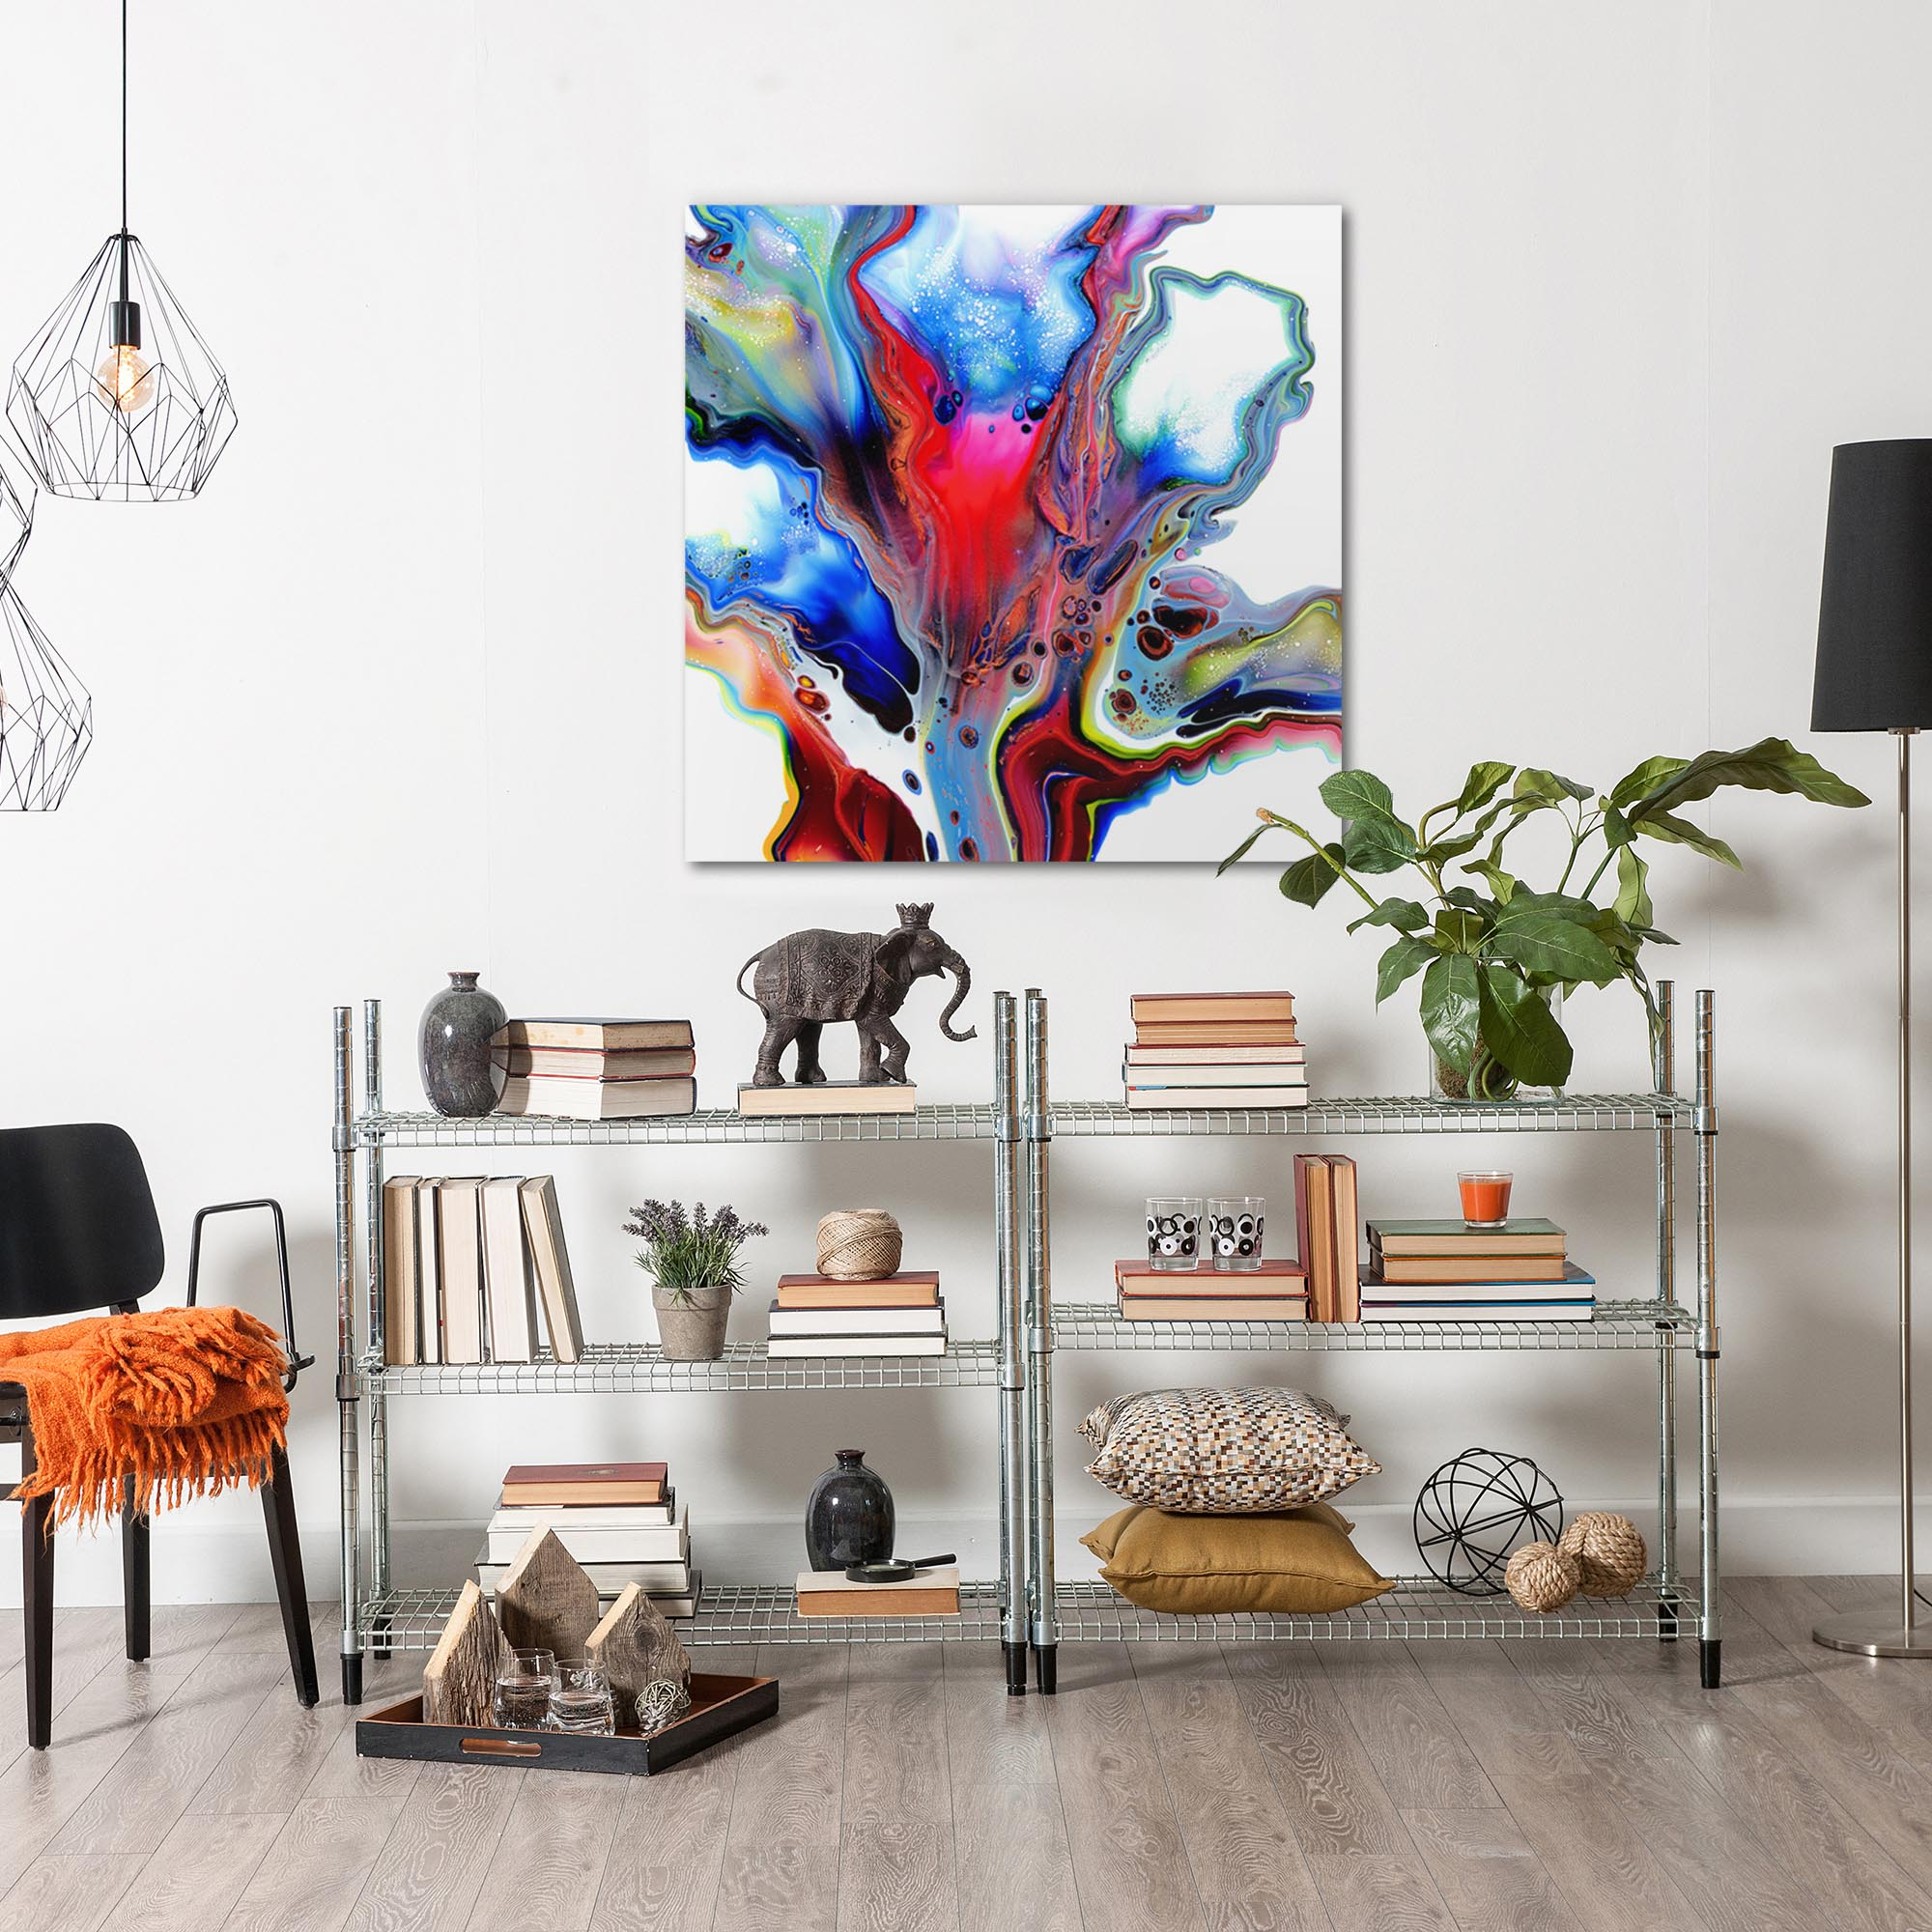 Emerging by Elana Reiter - Abstract Wall Art, Modern Home Decor (36in x 36in) - Image 3